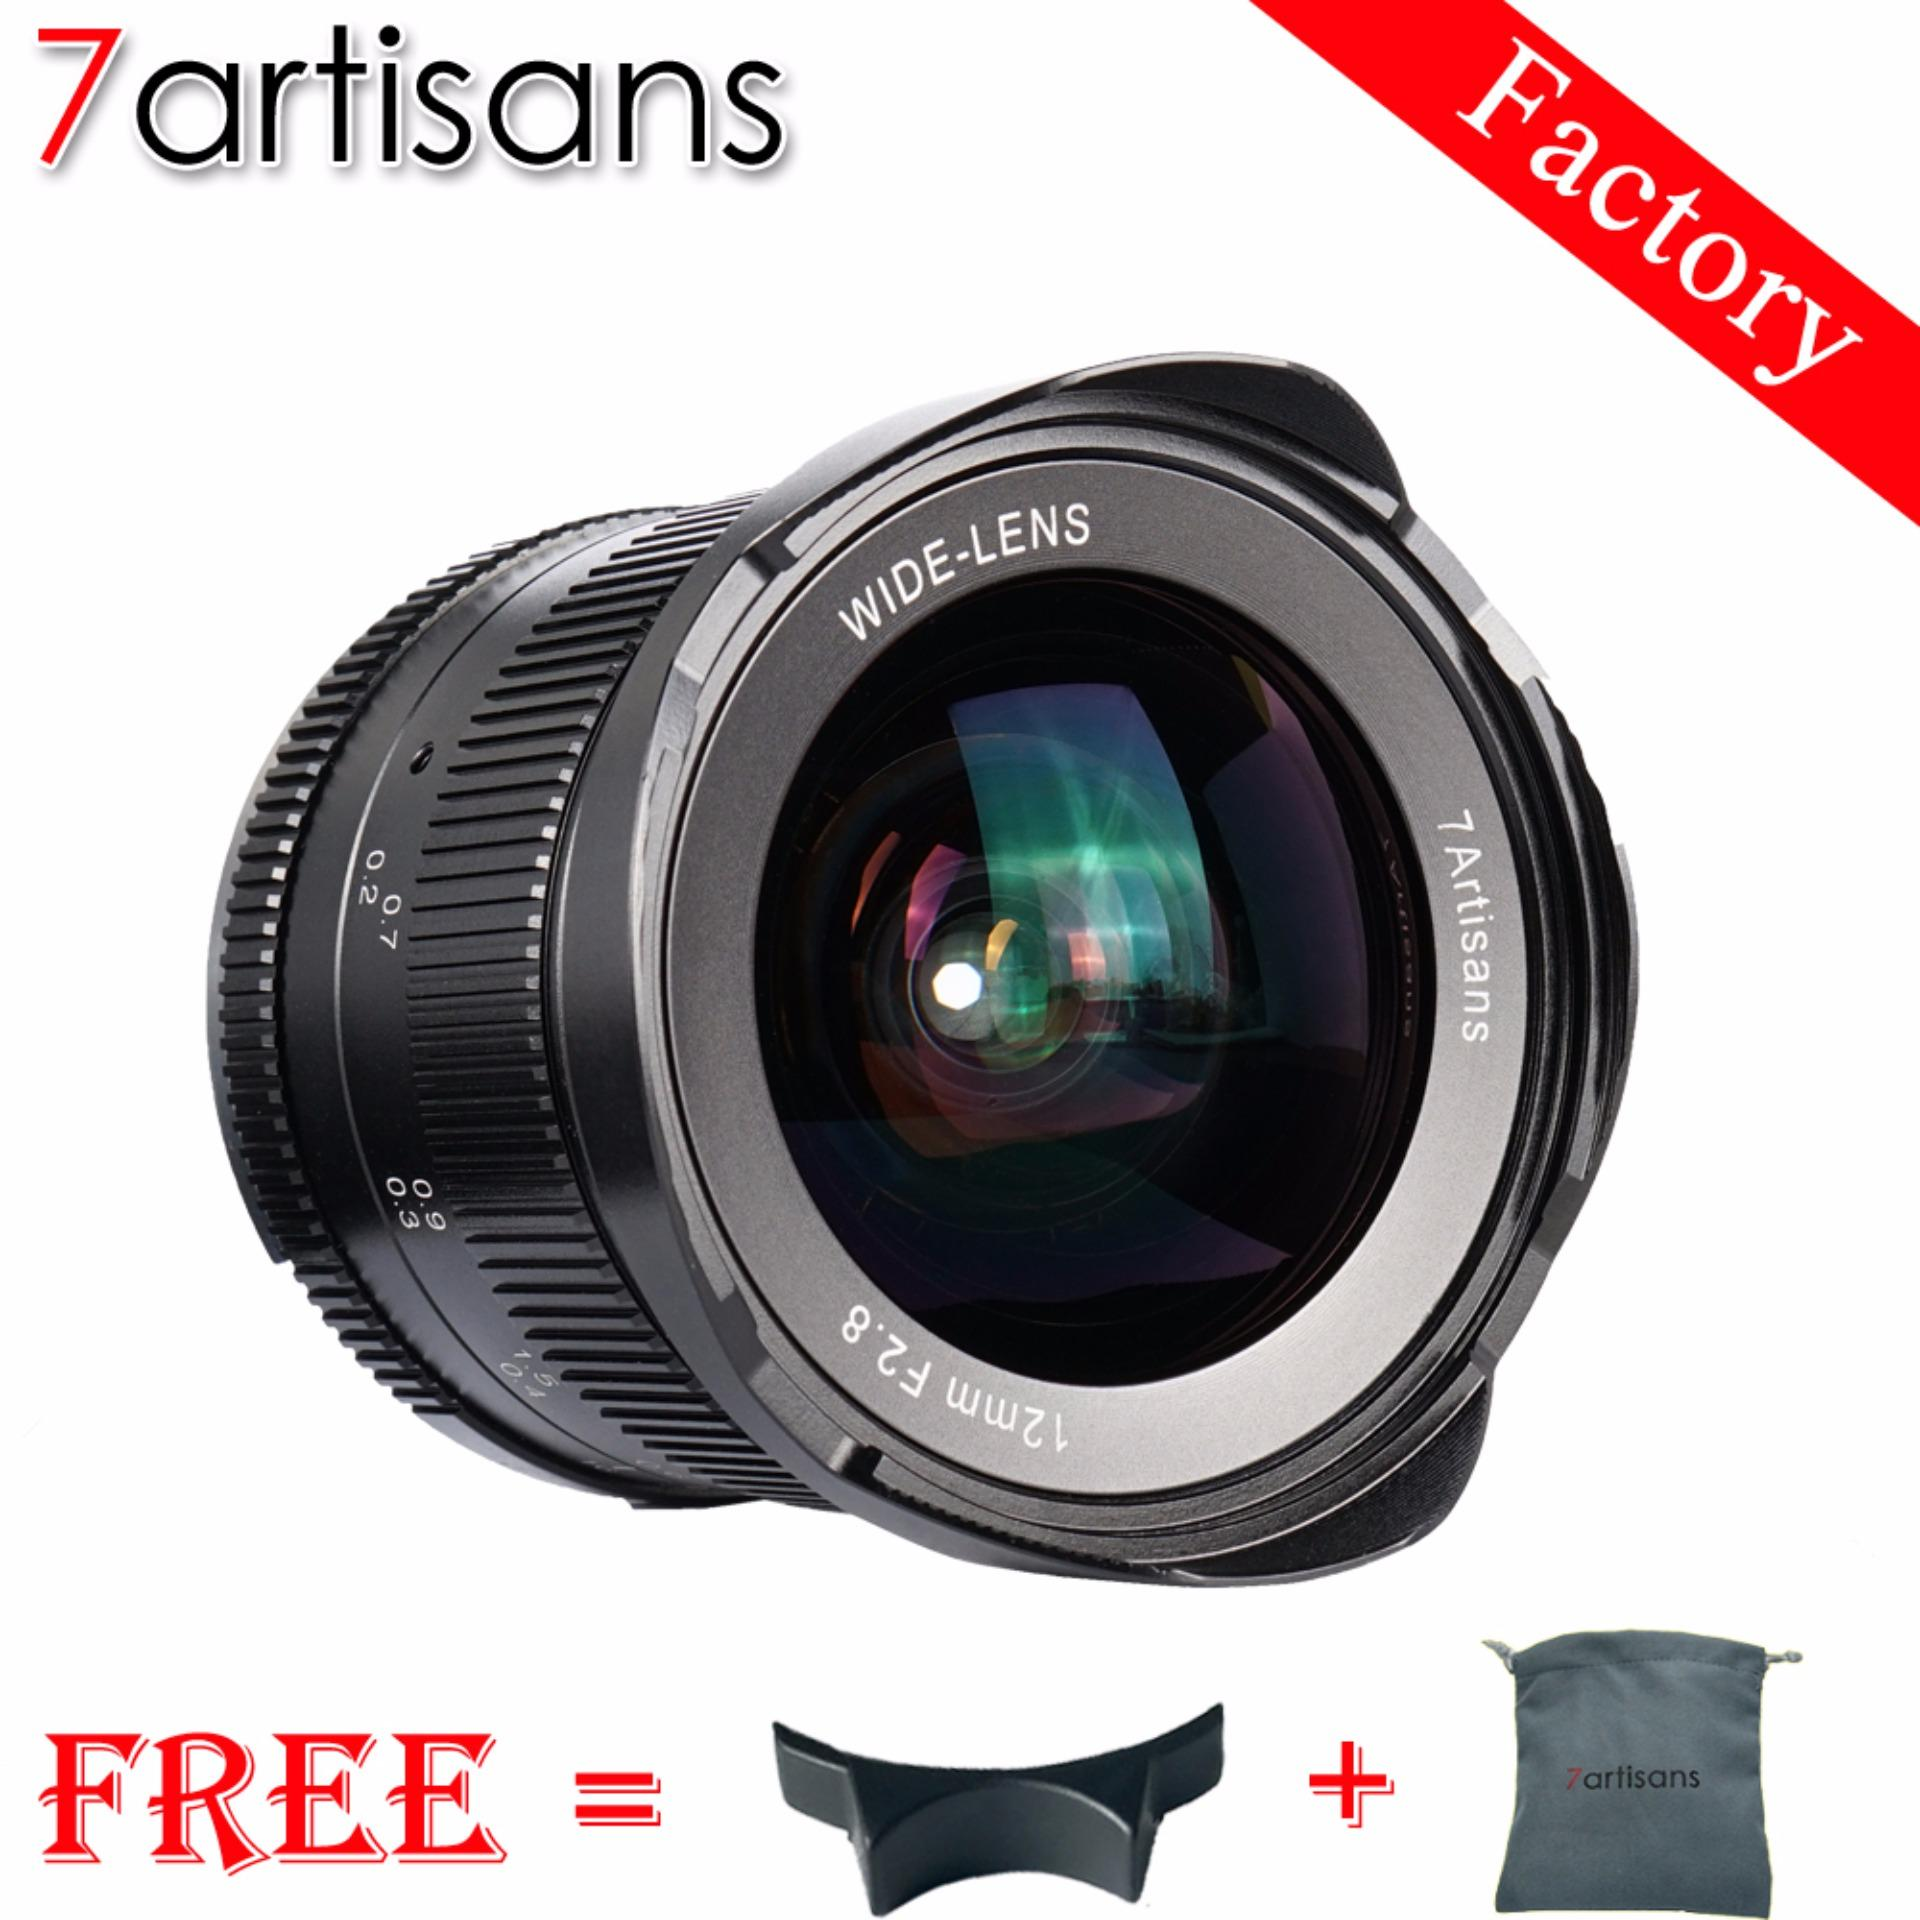 7artisans 12mm F2.8 Ultra Wide Angle Lens for Canon EOS-M Mount Mirrorless